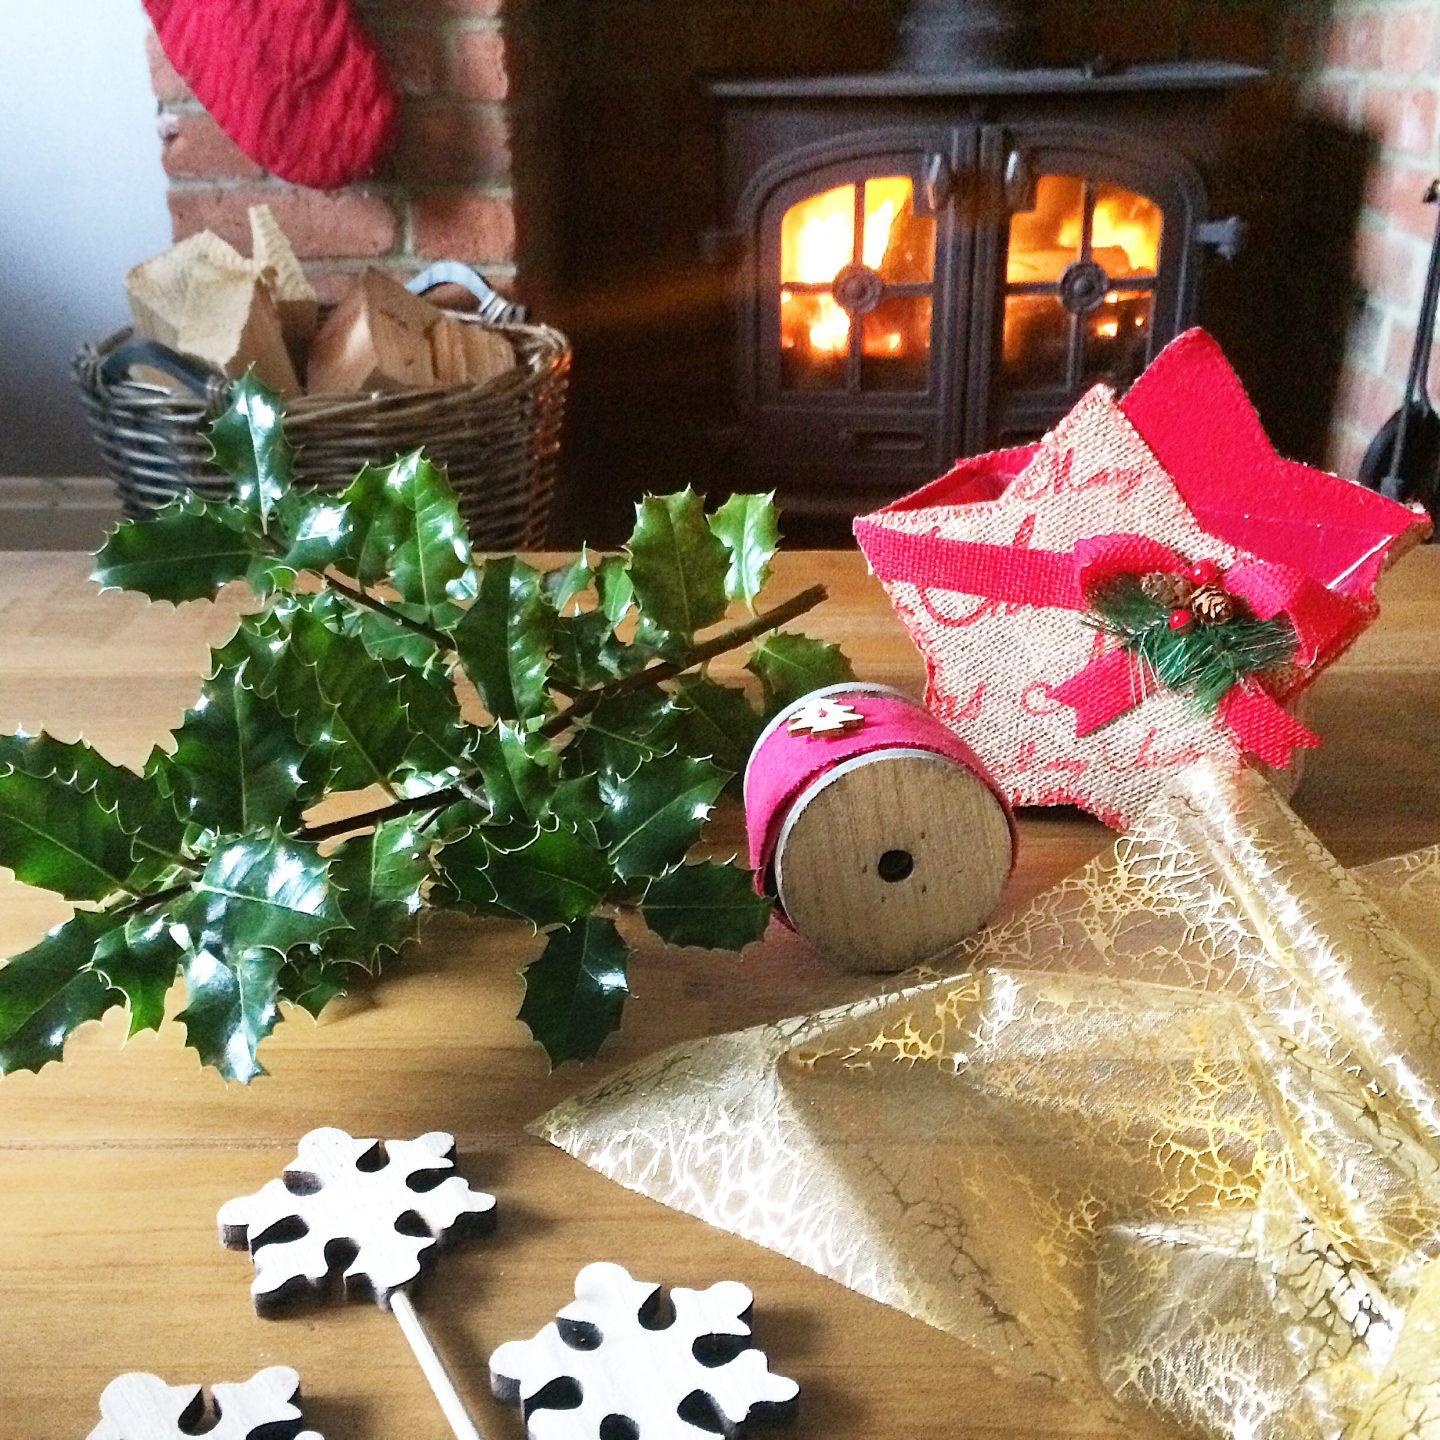 Lifestyle | Christmas Crafts With Oasis Home & Hobby